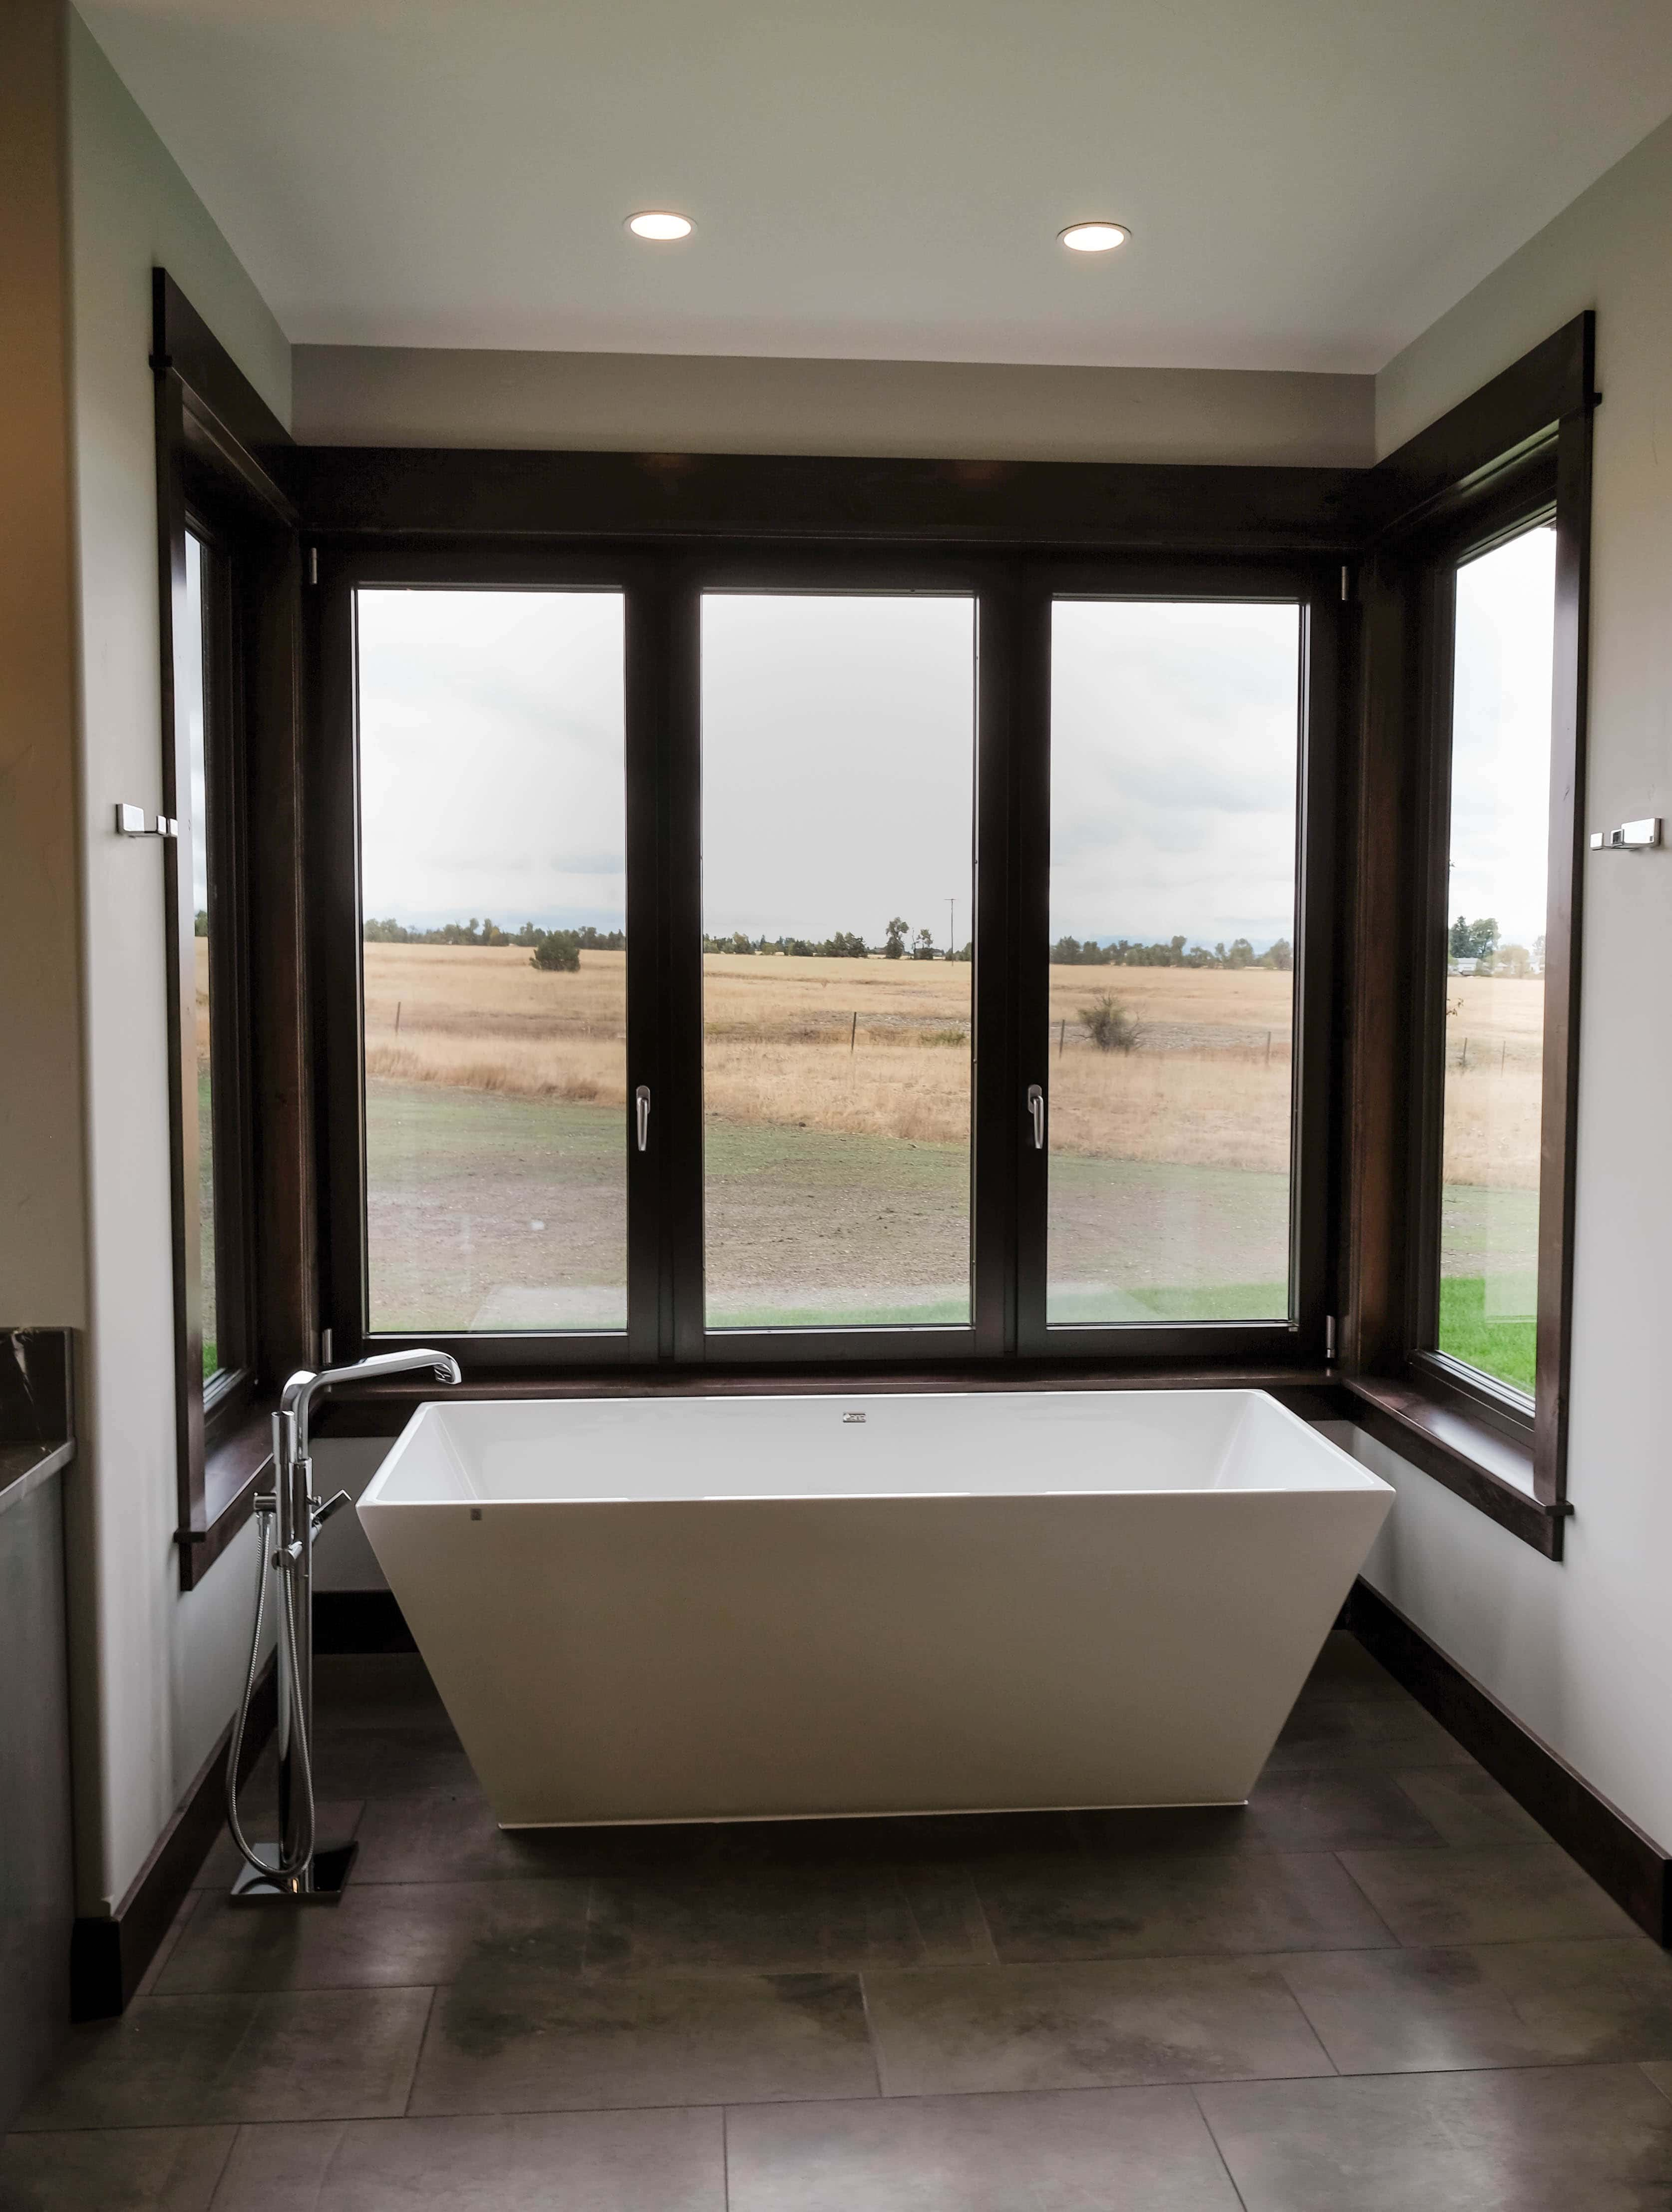 Parade of Homes bathroom with large tub surrounded by windows